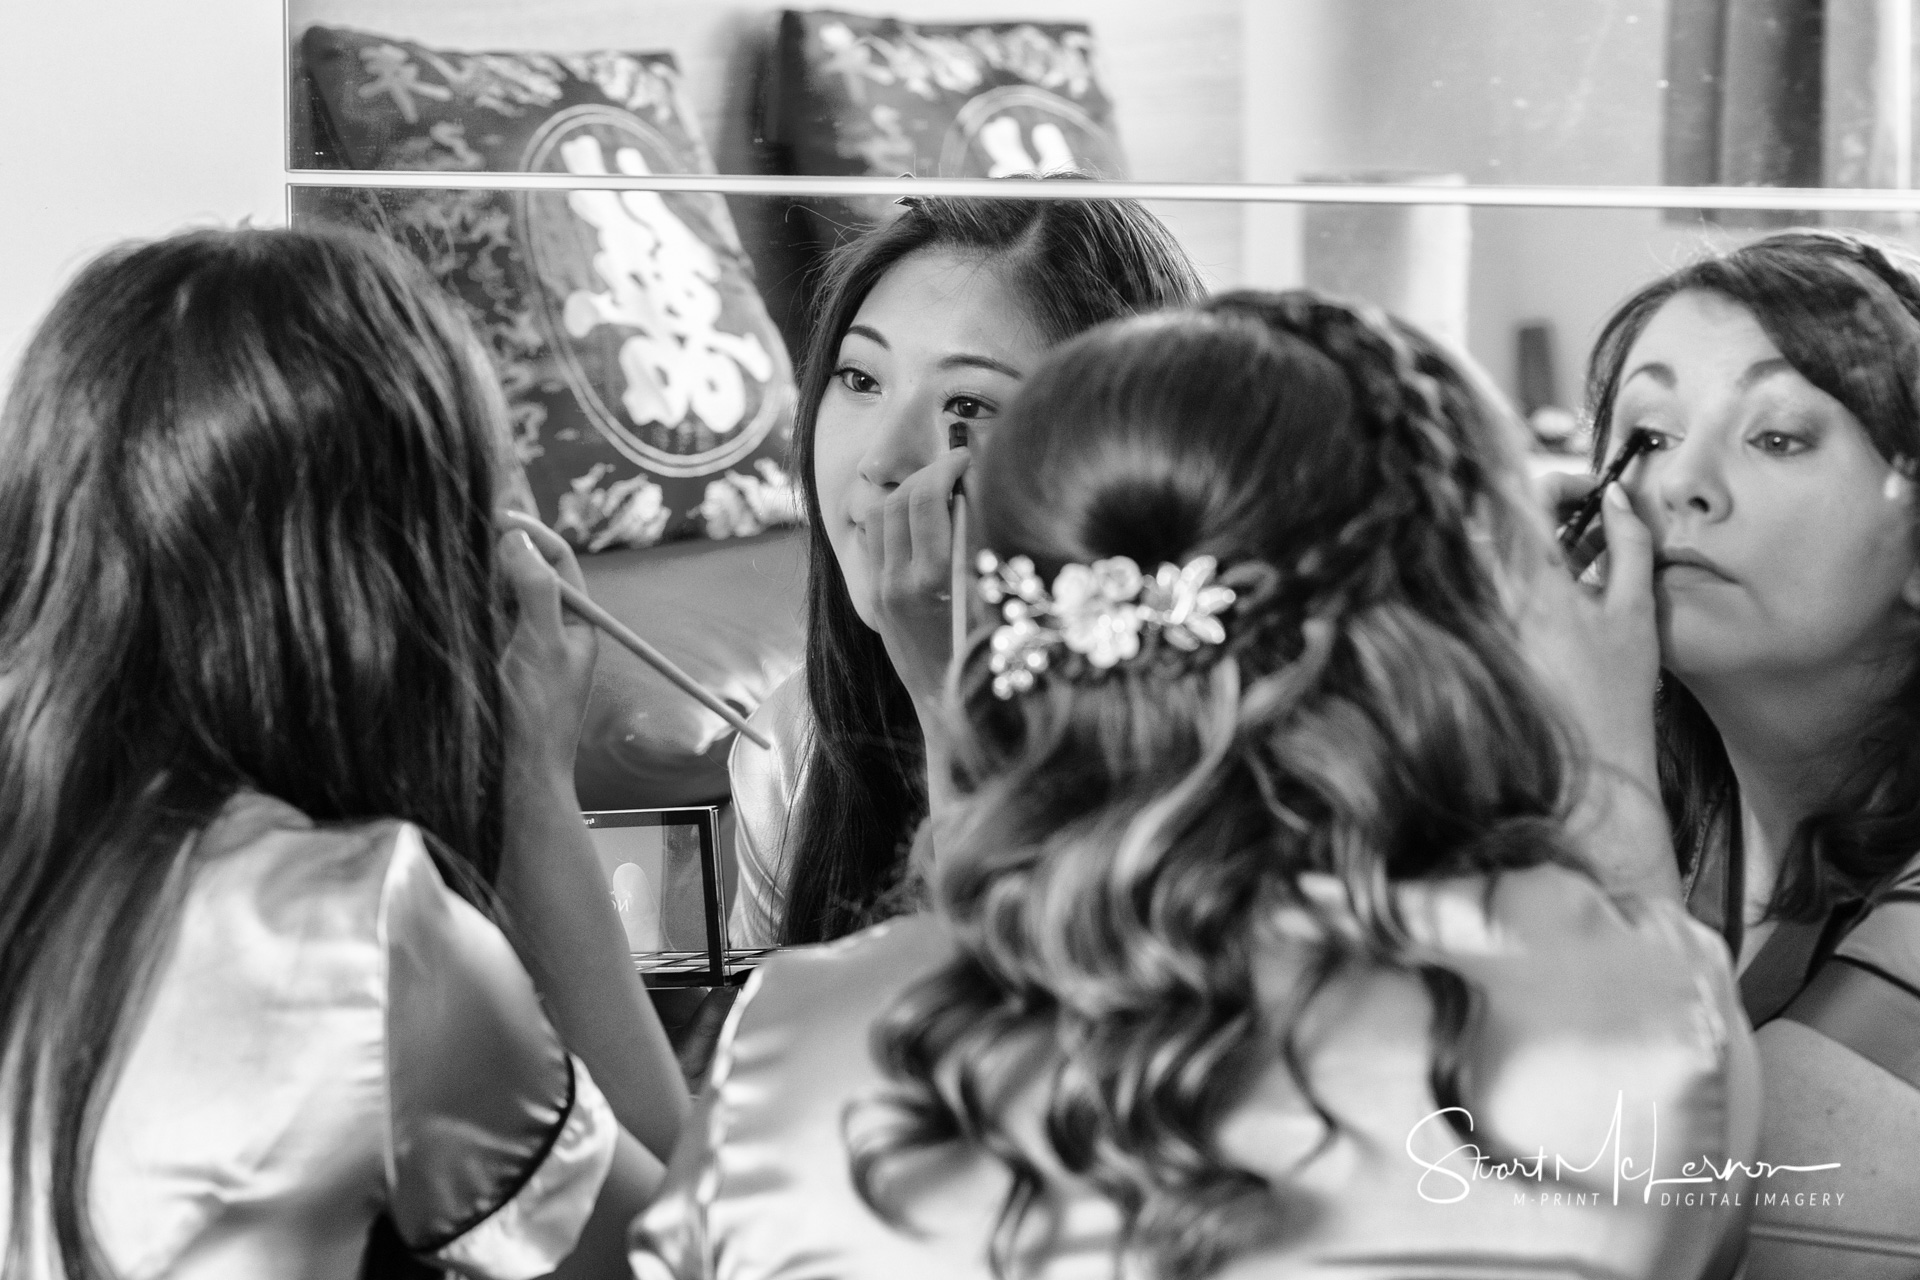 The bride and her bridesmaid share a bedroom mirror as they apply makeup